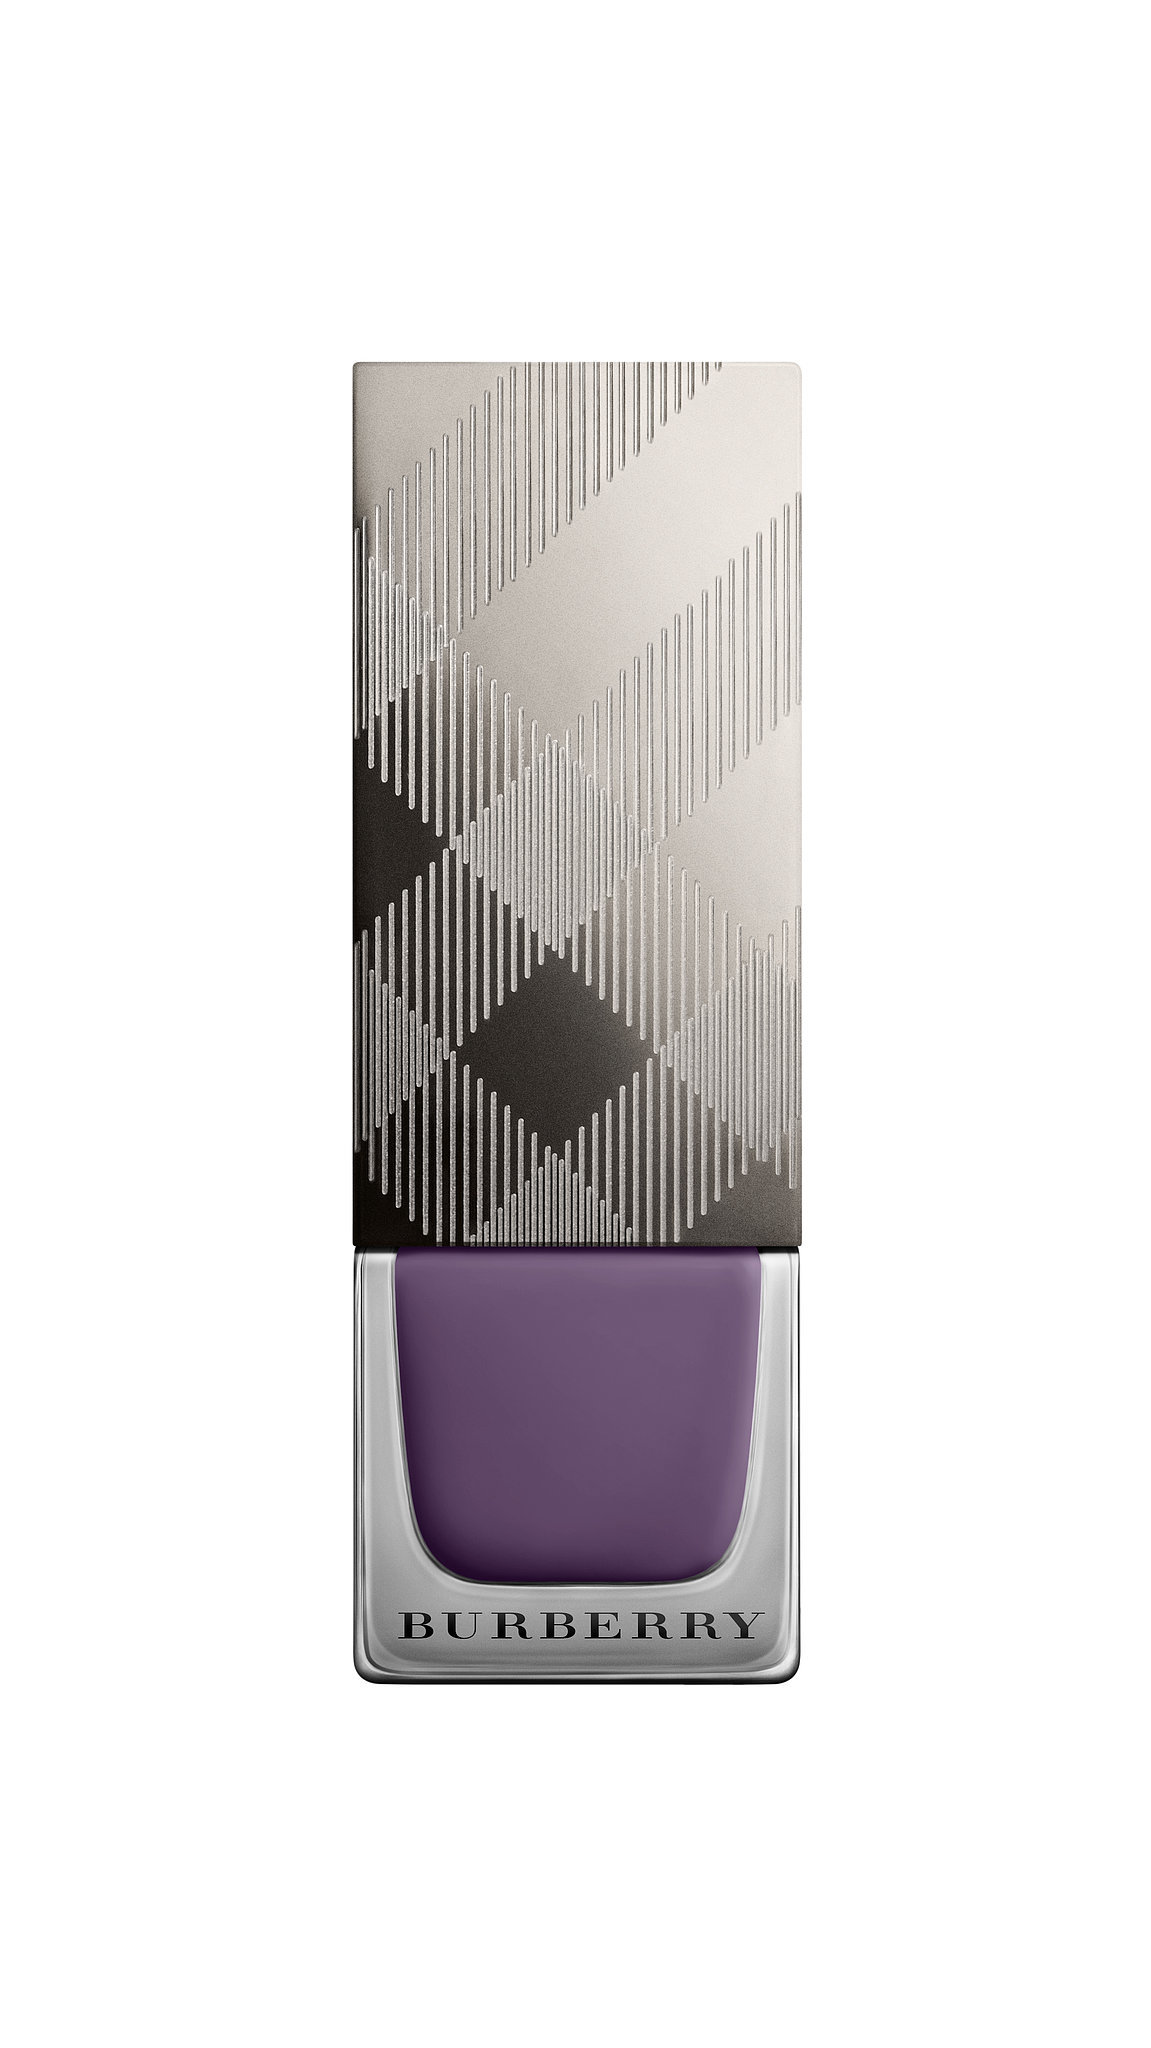 Burberry Pale Grape